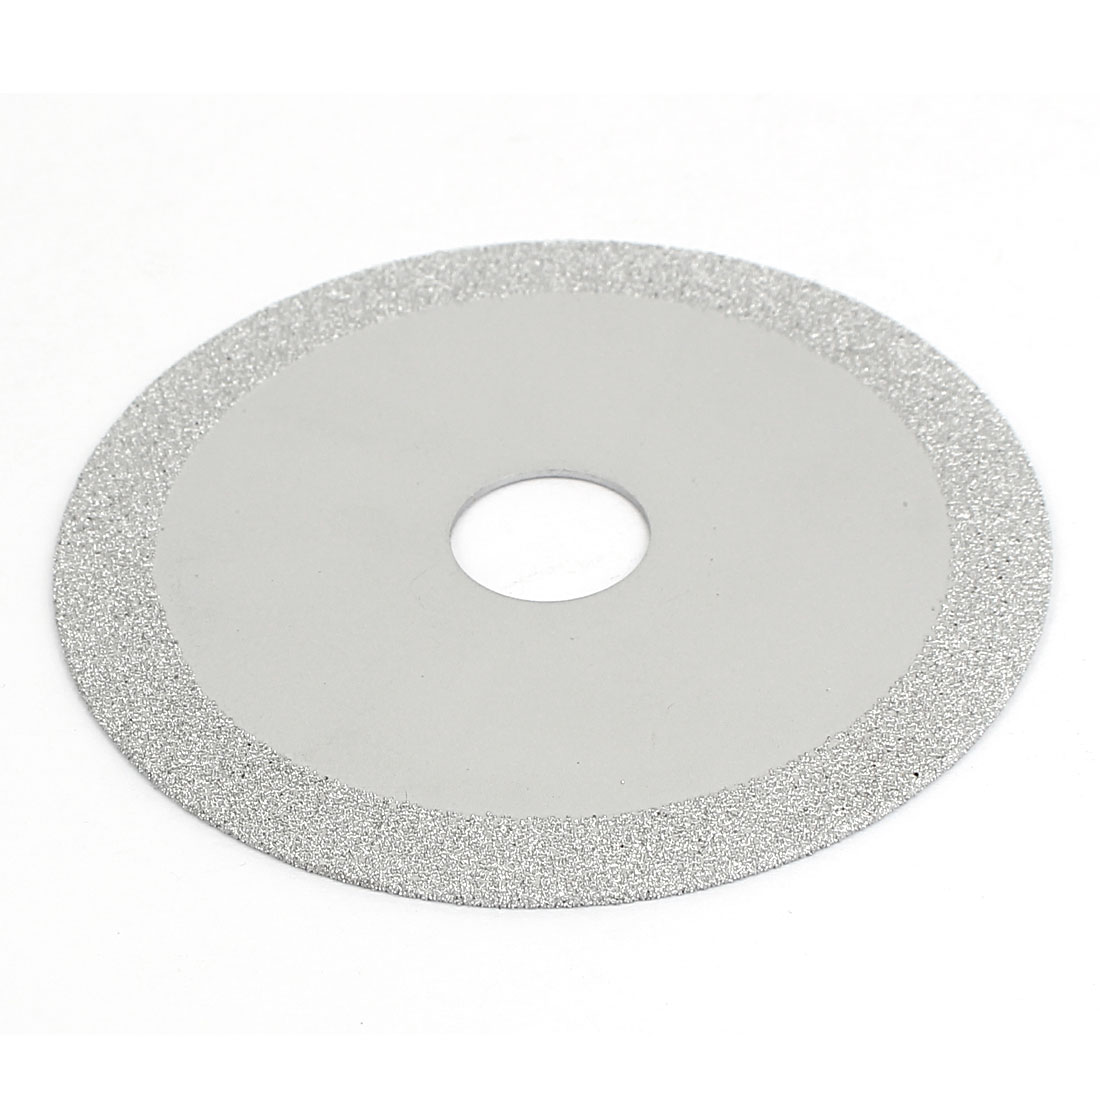 100mm Outer Dia 20mm Bore Diamond Circular Disc Cutting Saw Cutter Wheel for Marble